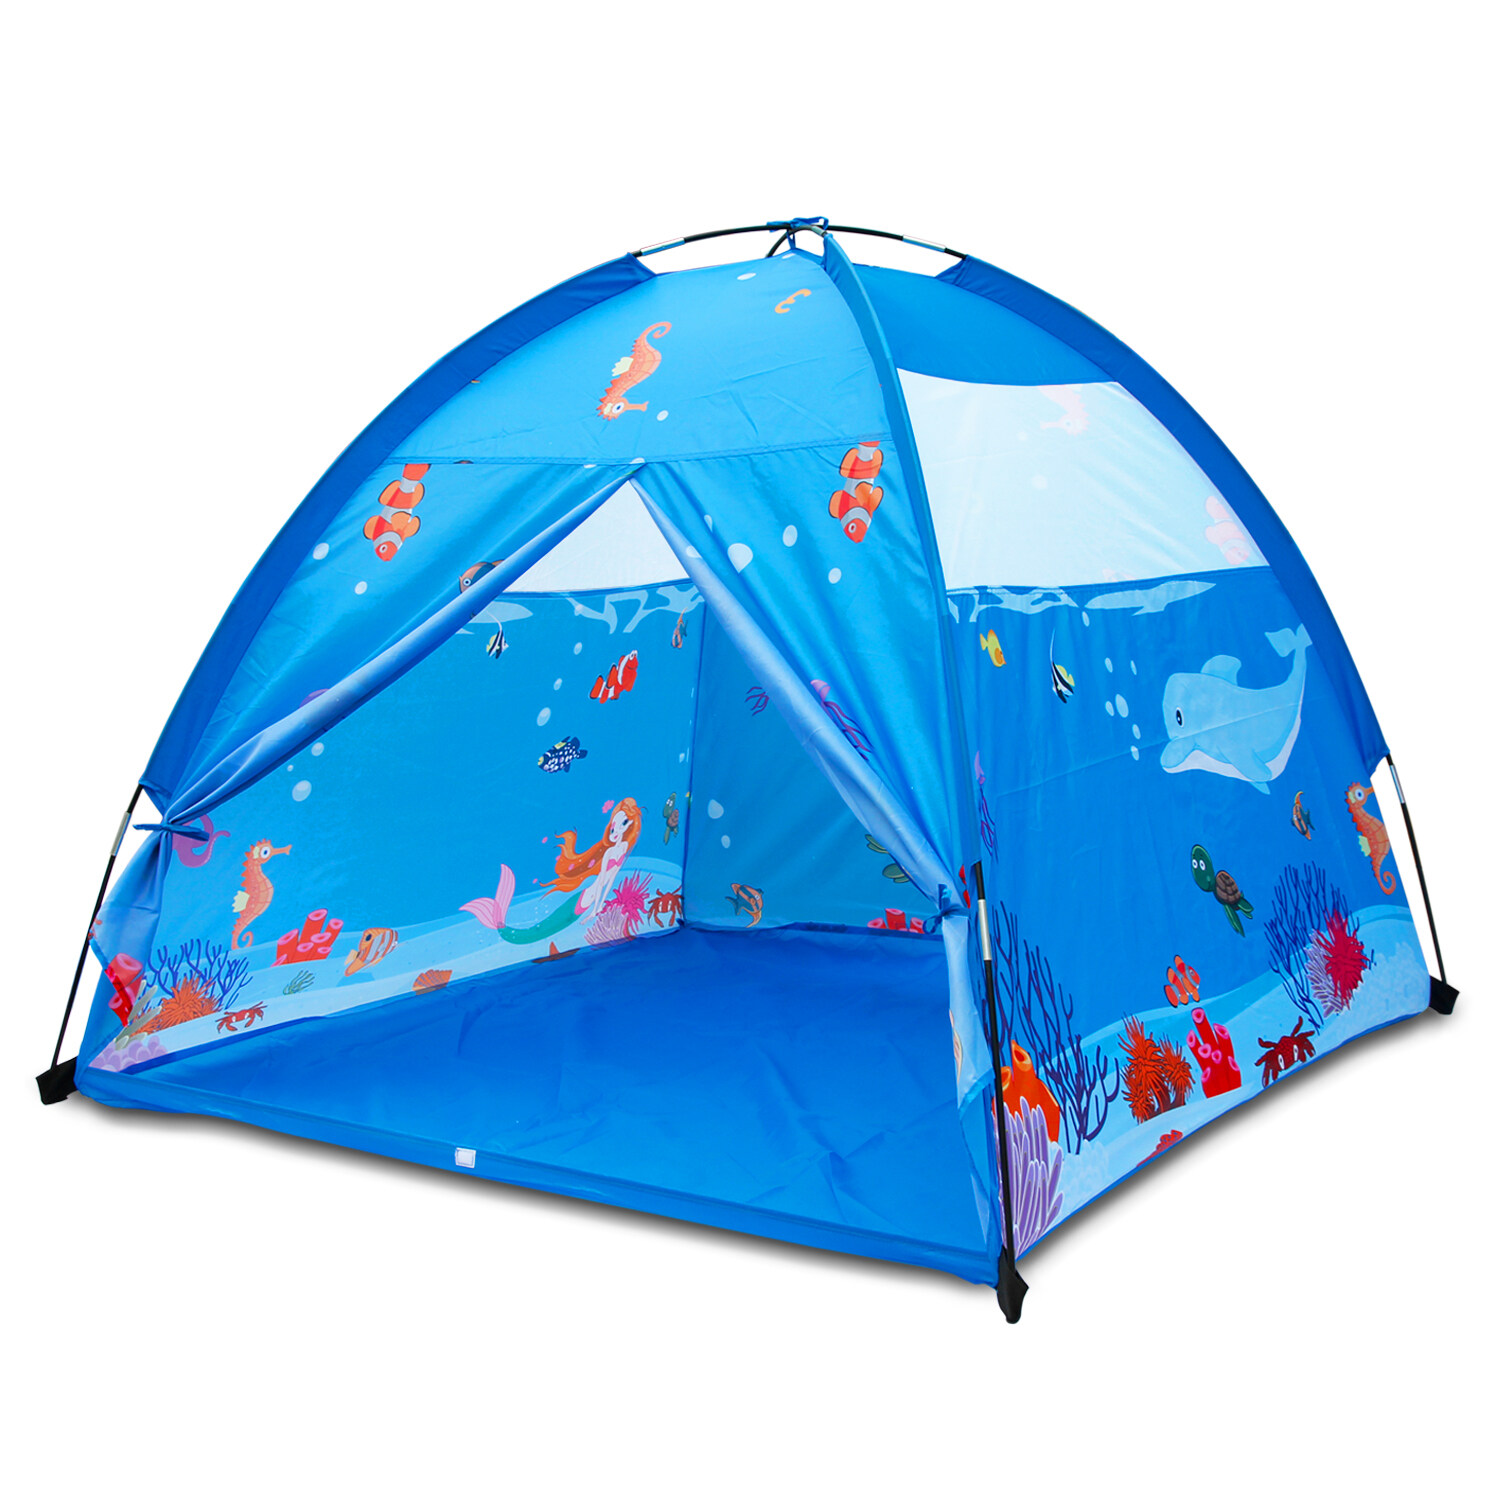 ALP Play Tent For Kids 150x150CM Dome Style Playhouse For Children Indoor Outdoor Ocean Sea World Pattern Toy For Boys and Girls Play At Christmas Day Beach Tent (Blue)